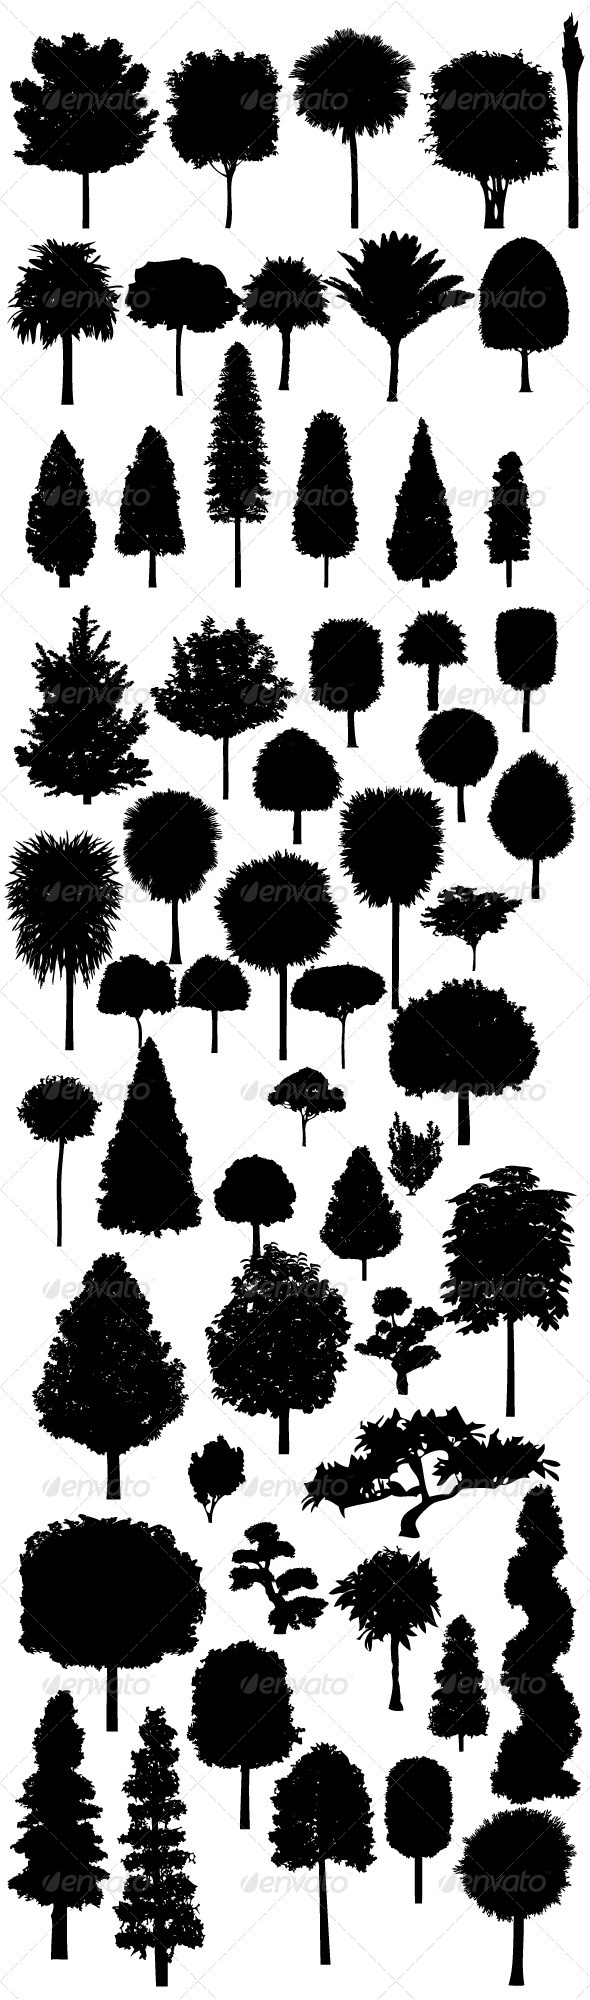 Tree Silhouettes Big Pack